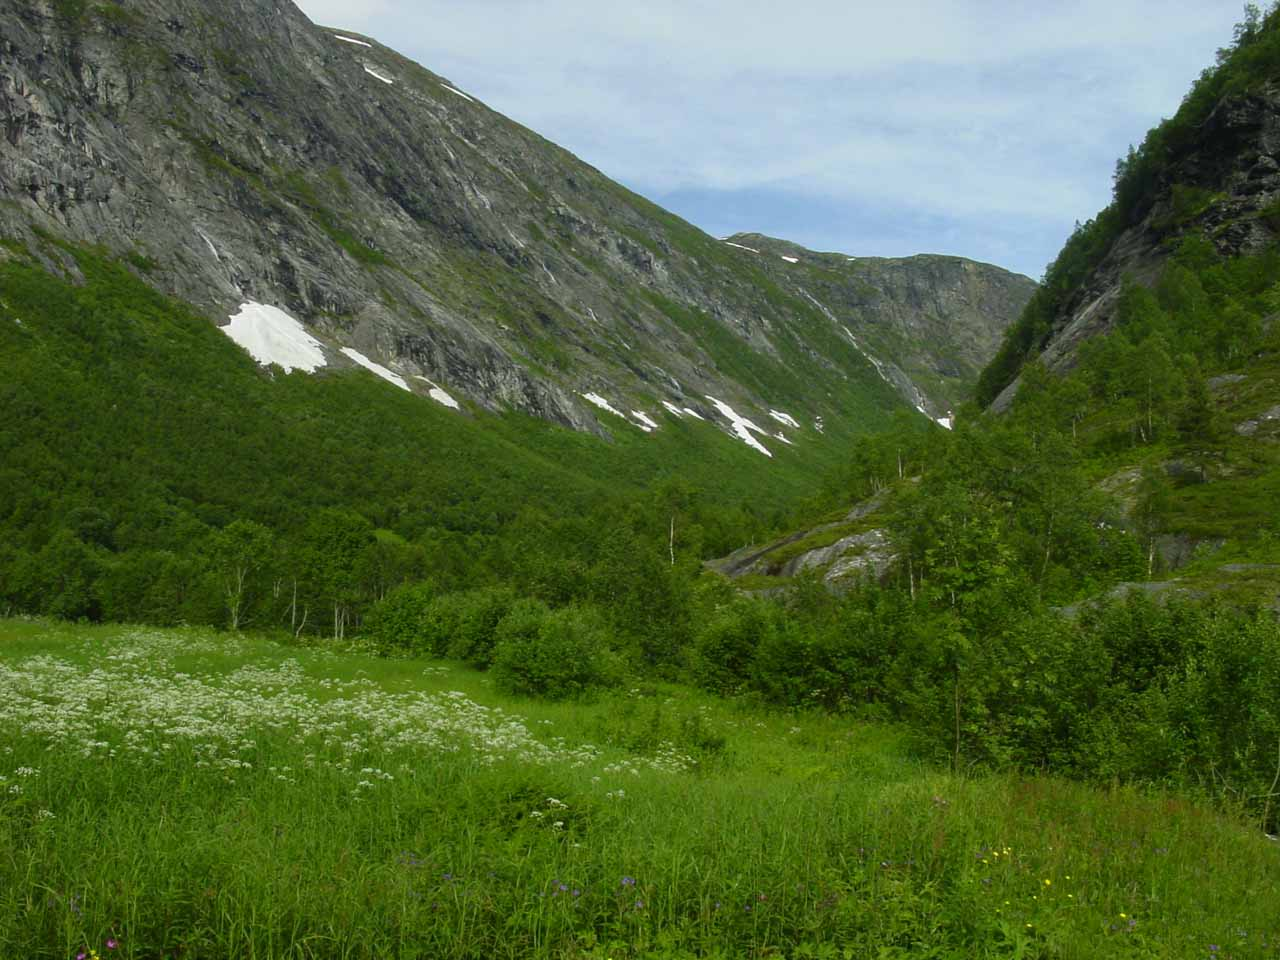 Looking into the valley beyond the houses of Muldal at the top of Muldalsfossen